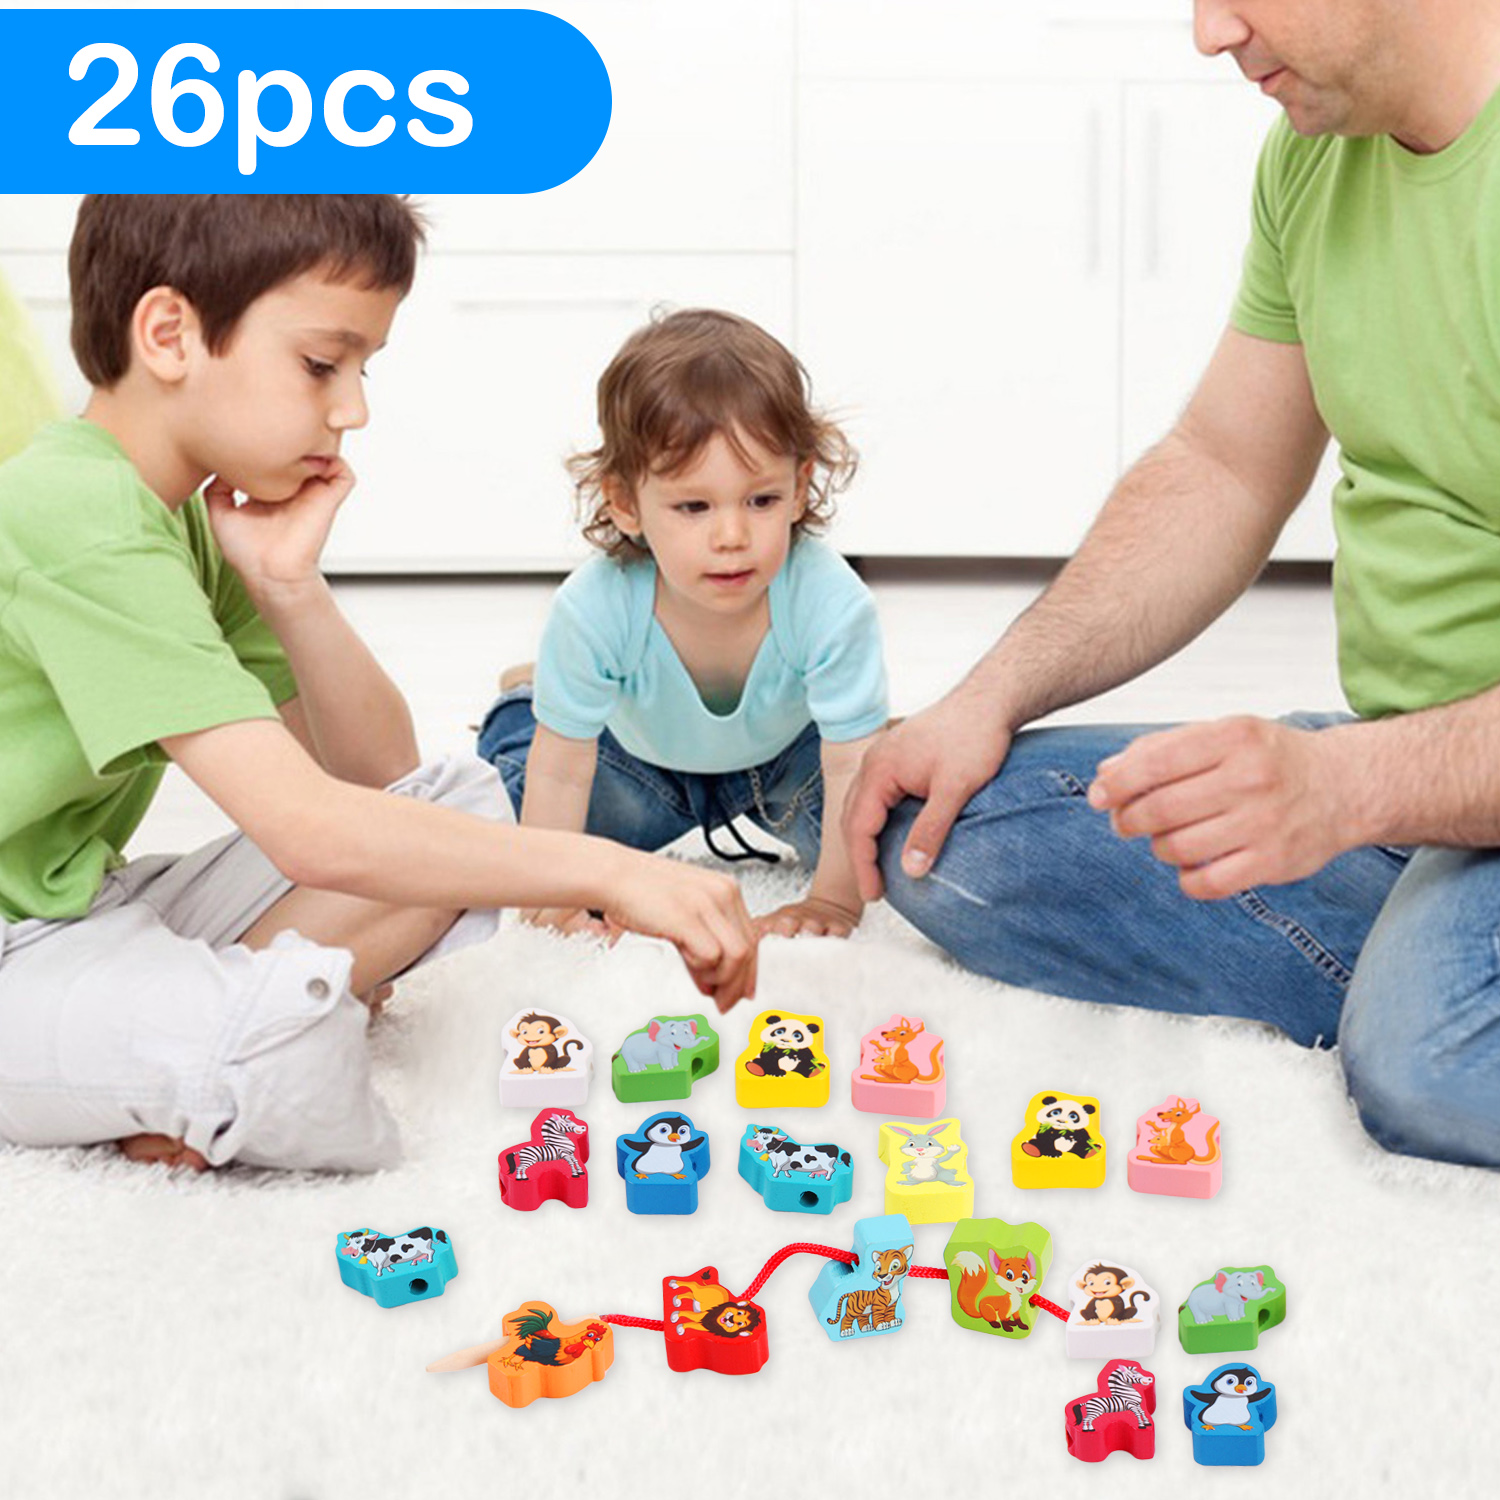 Kids 26pcs Montessori DIY Colored Wooden Cartoon Animals Shaped String Threading Lacing Beads Beading Game Jewelry Making Toys